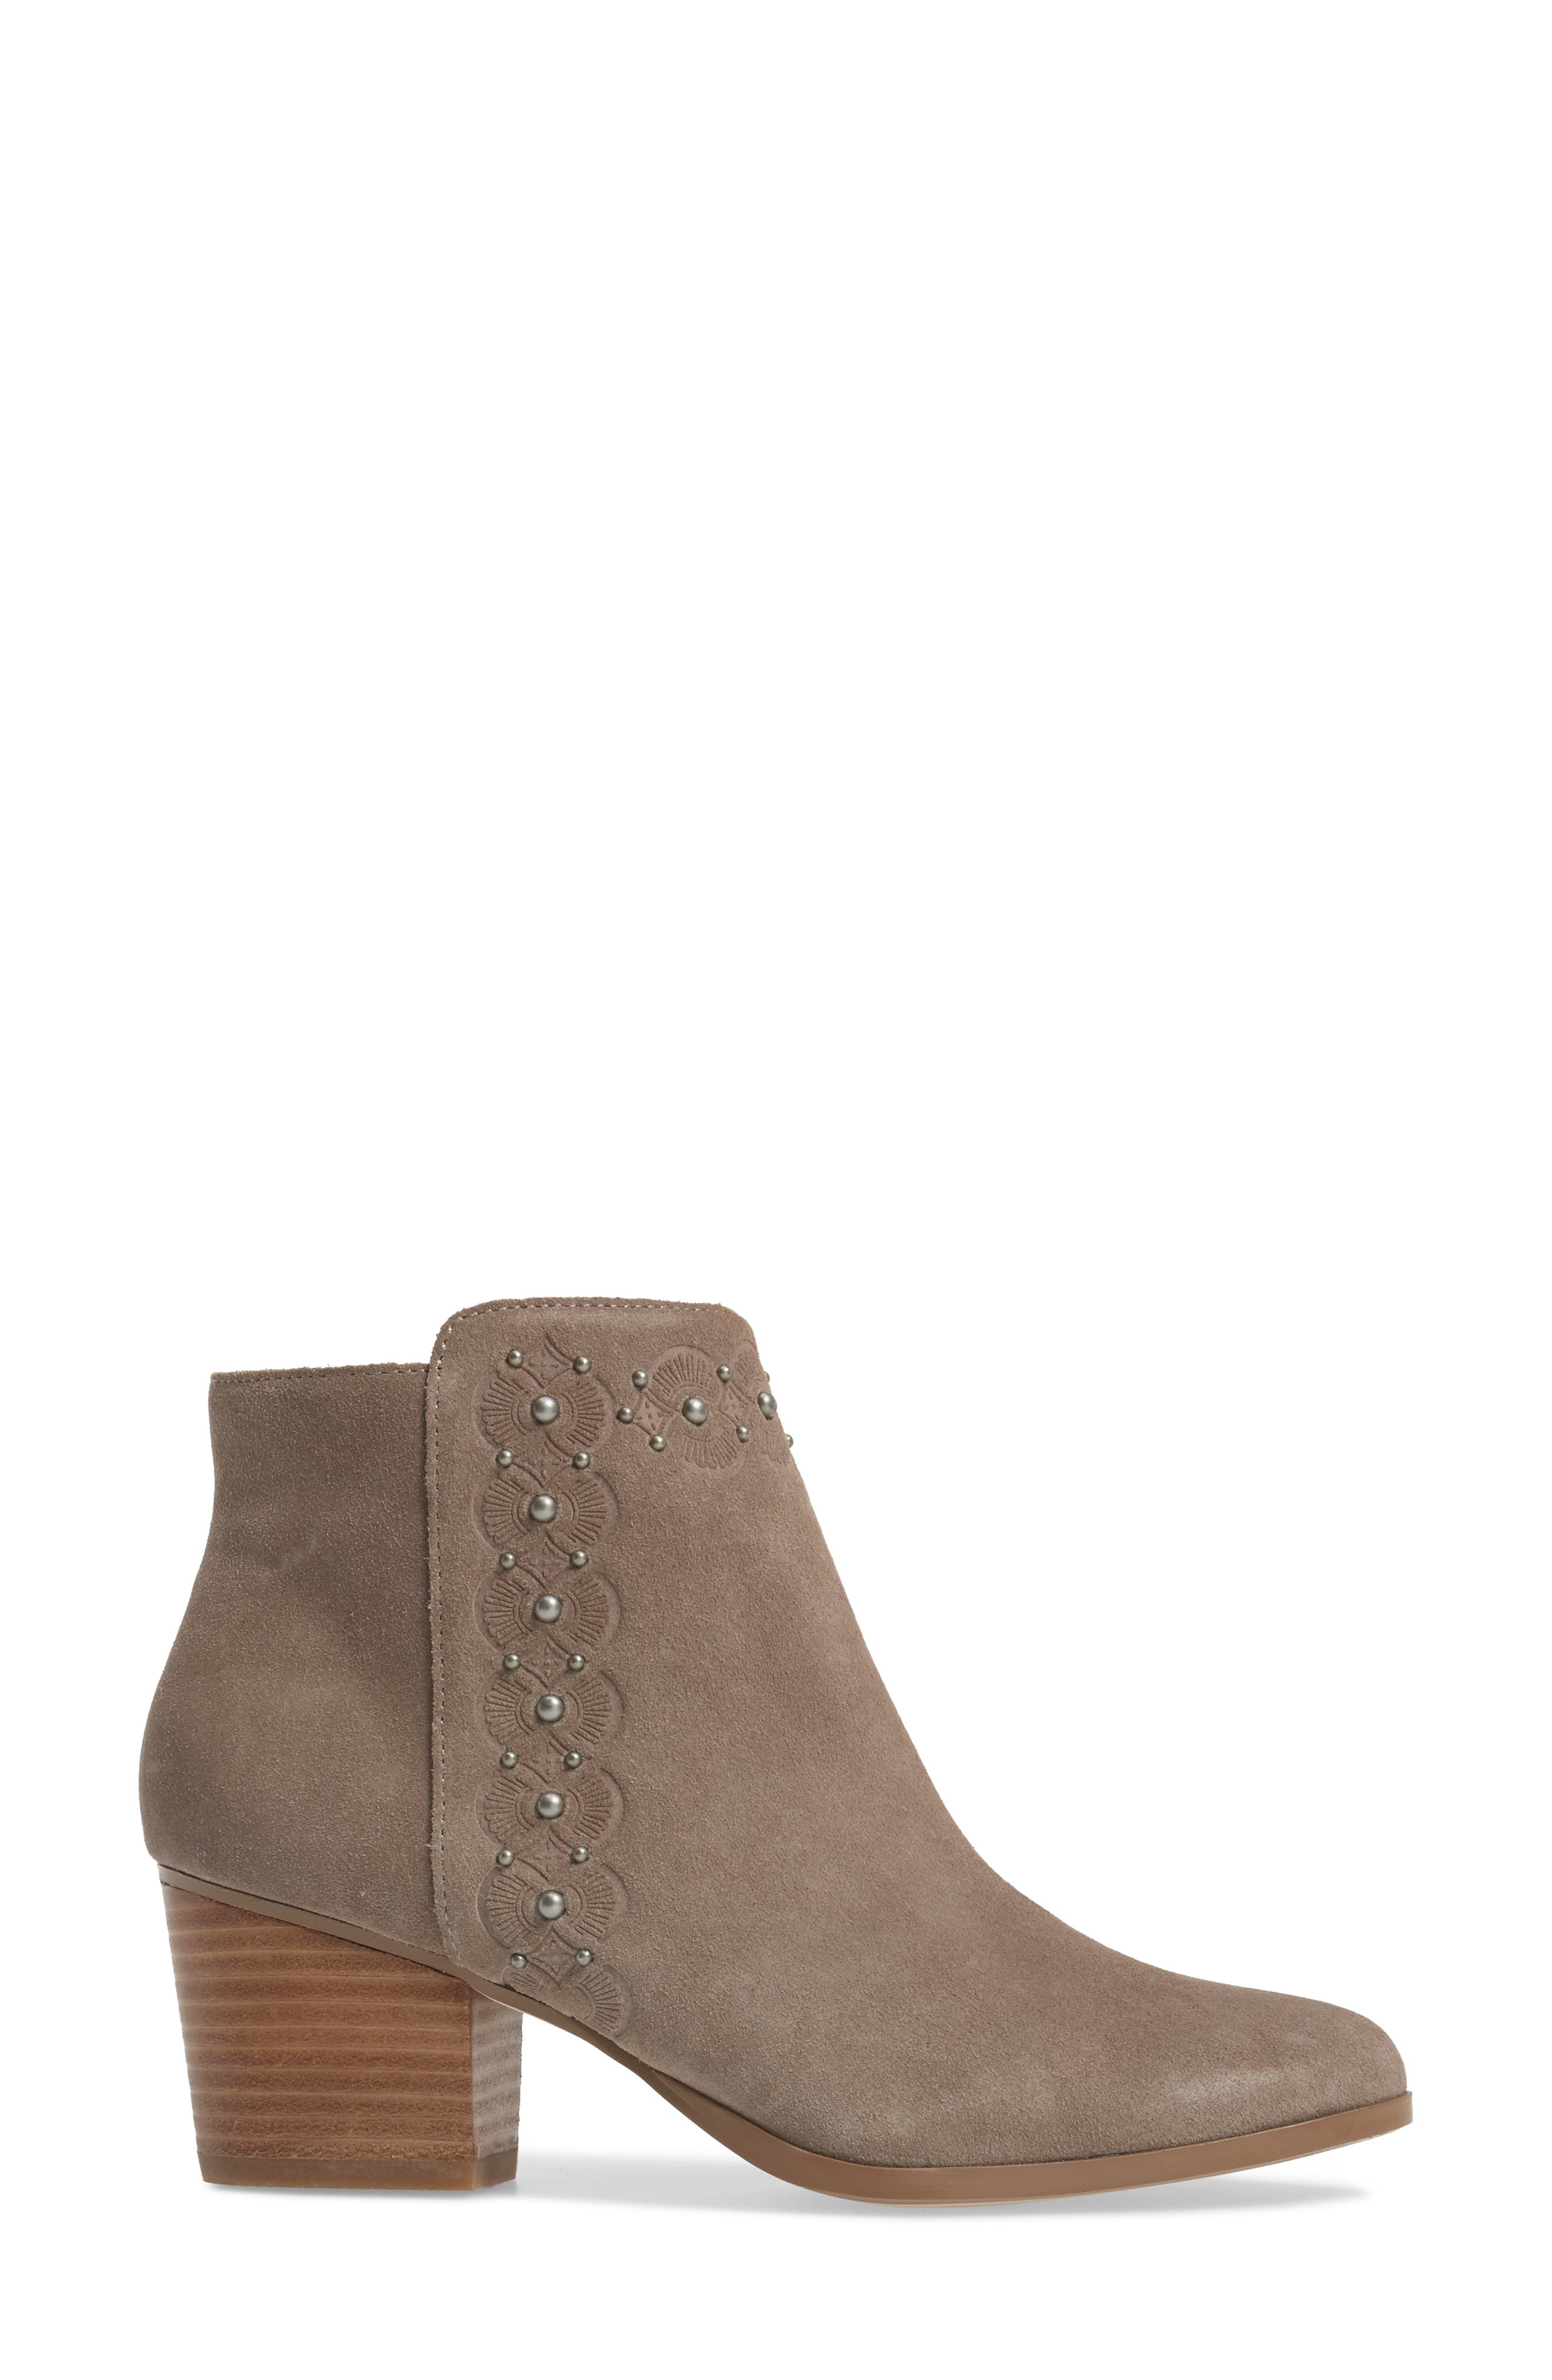 Gala Studded Embossed Bootie,                             Alternate thumbnail 3, color,                             Mushroom Suede